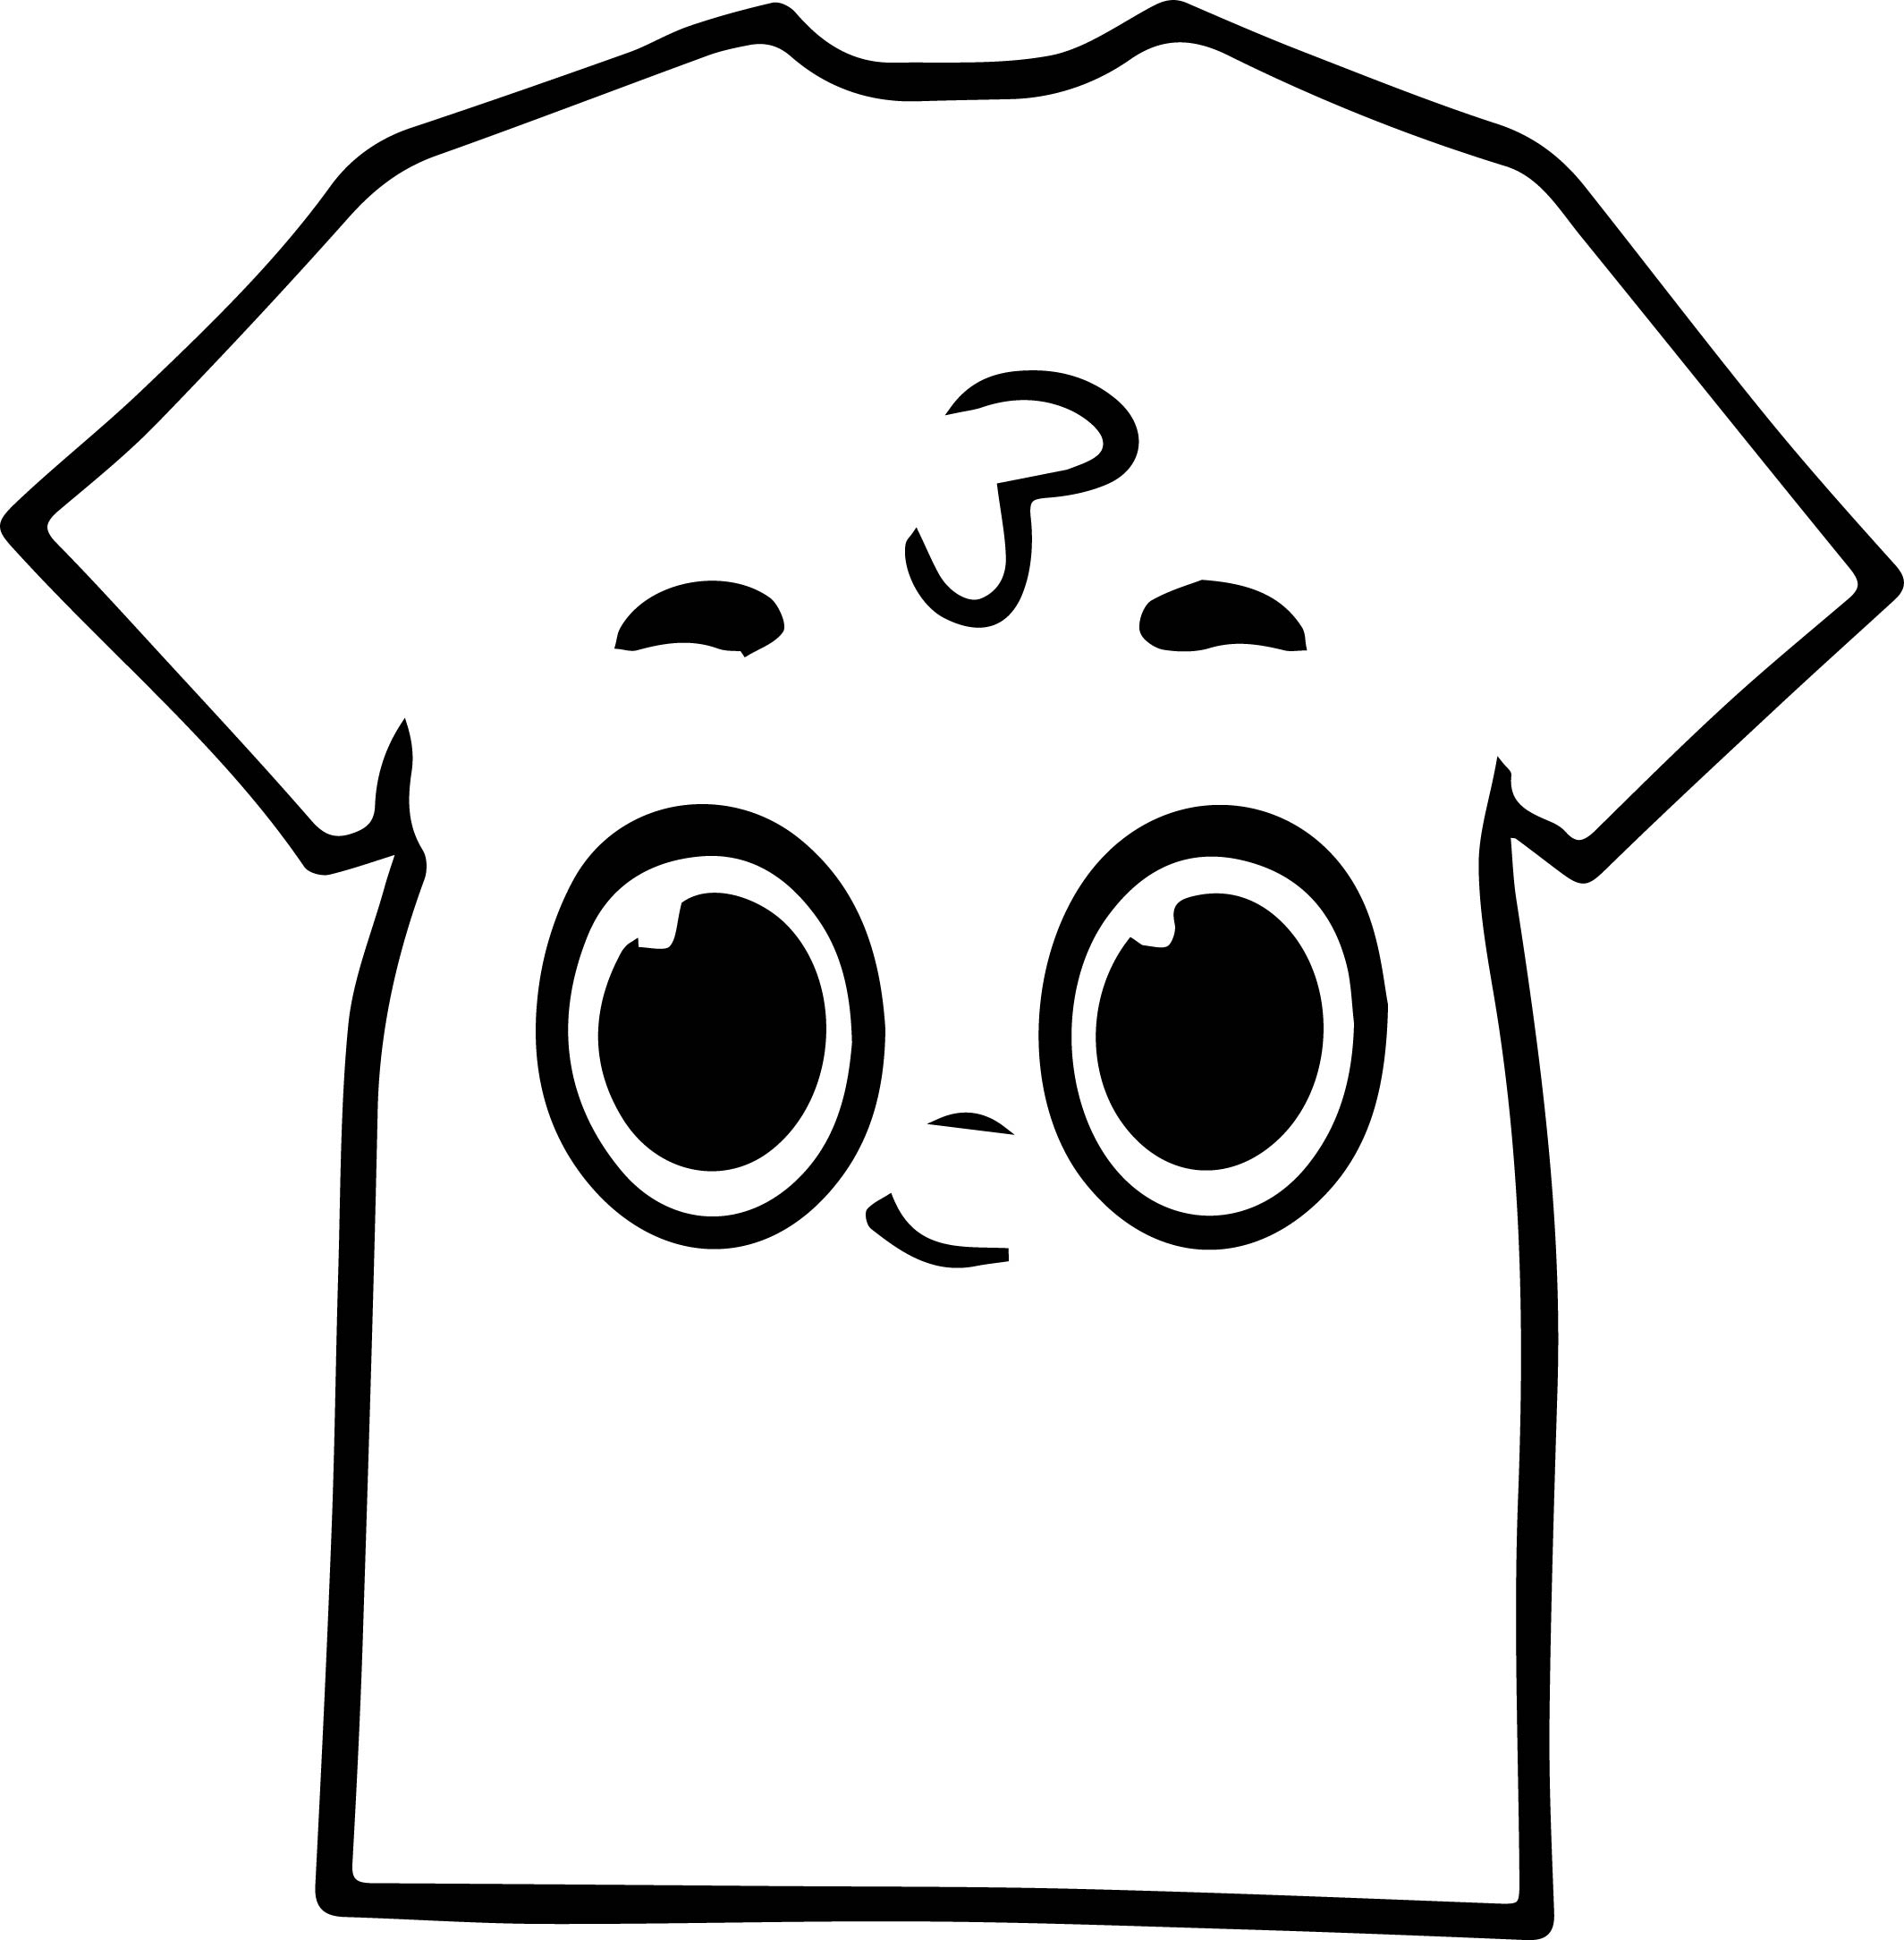 shirt coloring page - morphle cartoon cute shirt coloring page